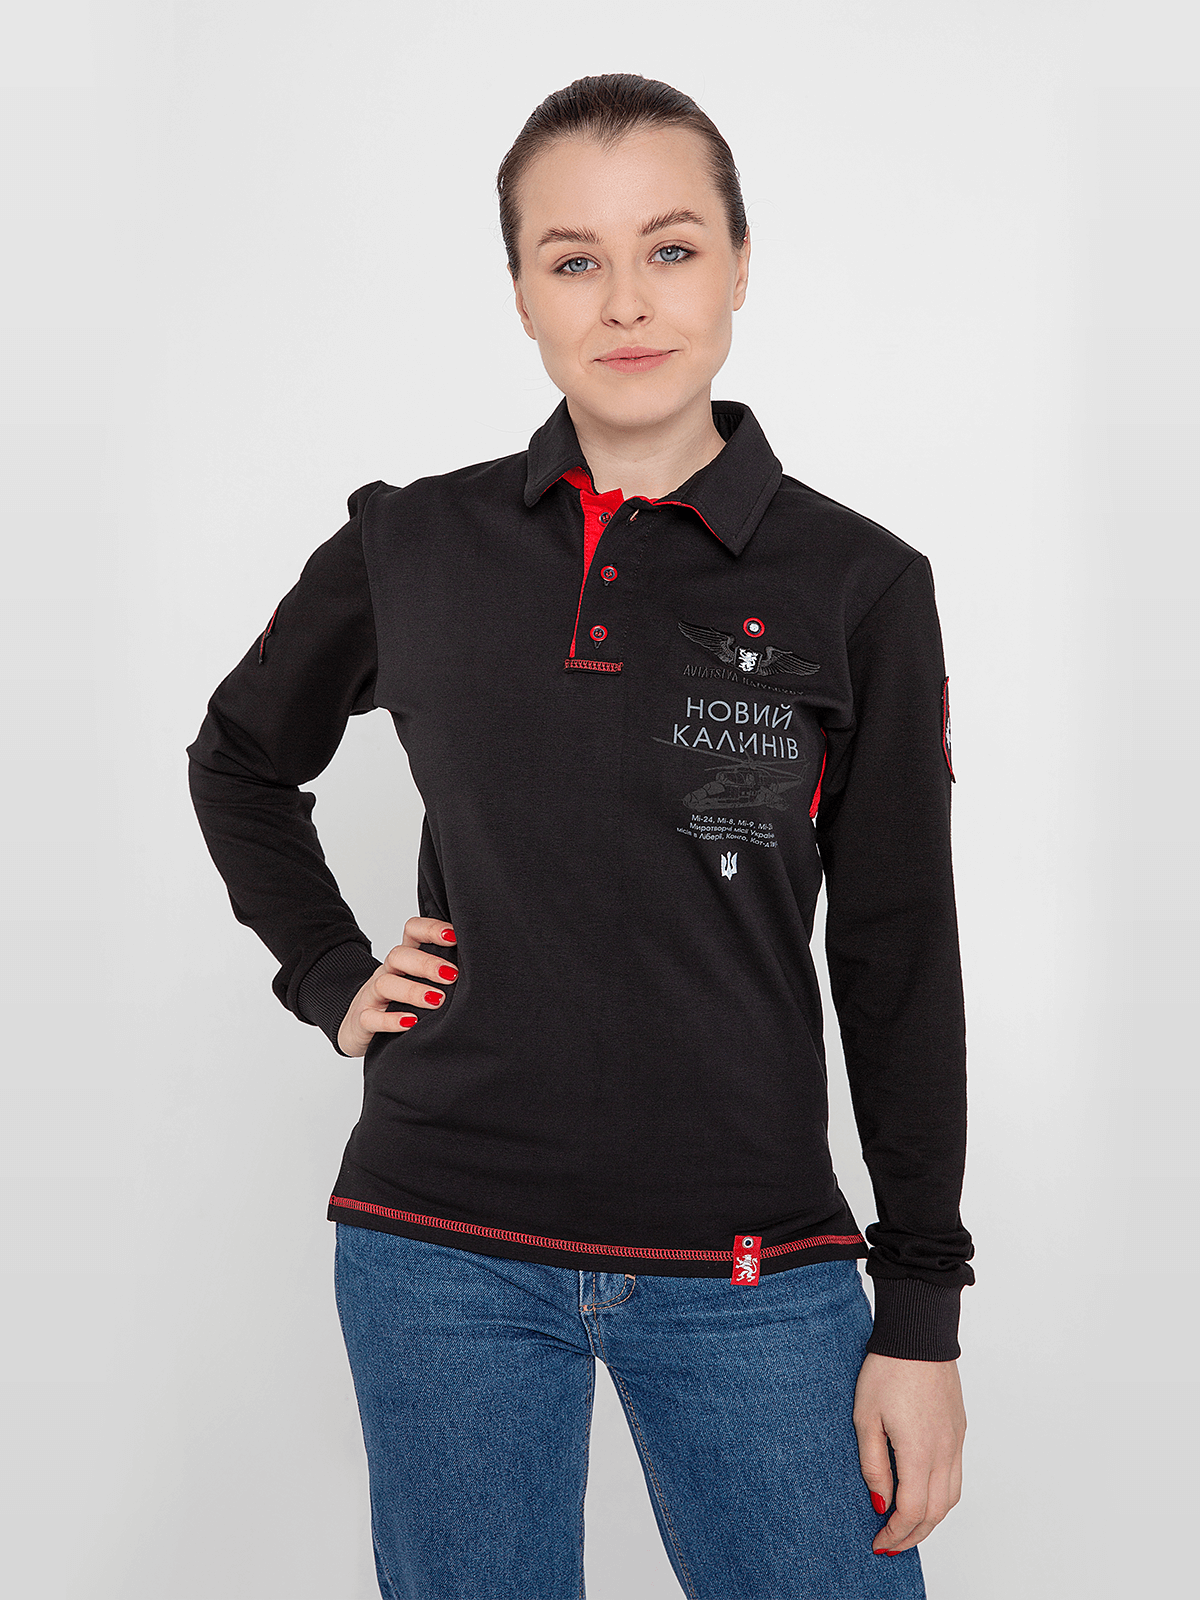 Women's Polo Long 12 Brigade (Kalyniv). Color black. Material: 75% cotton, 21% polyester, 4% spandex.